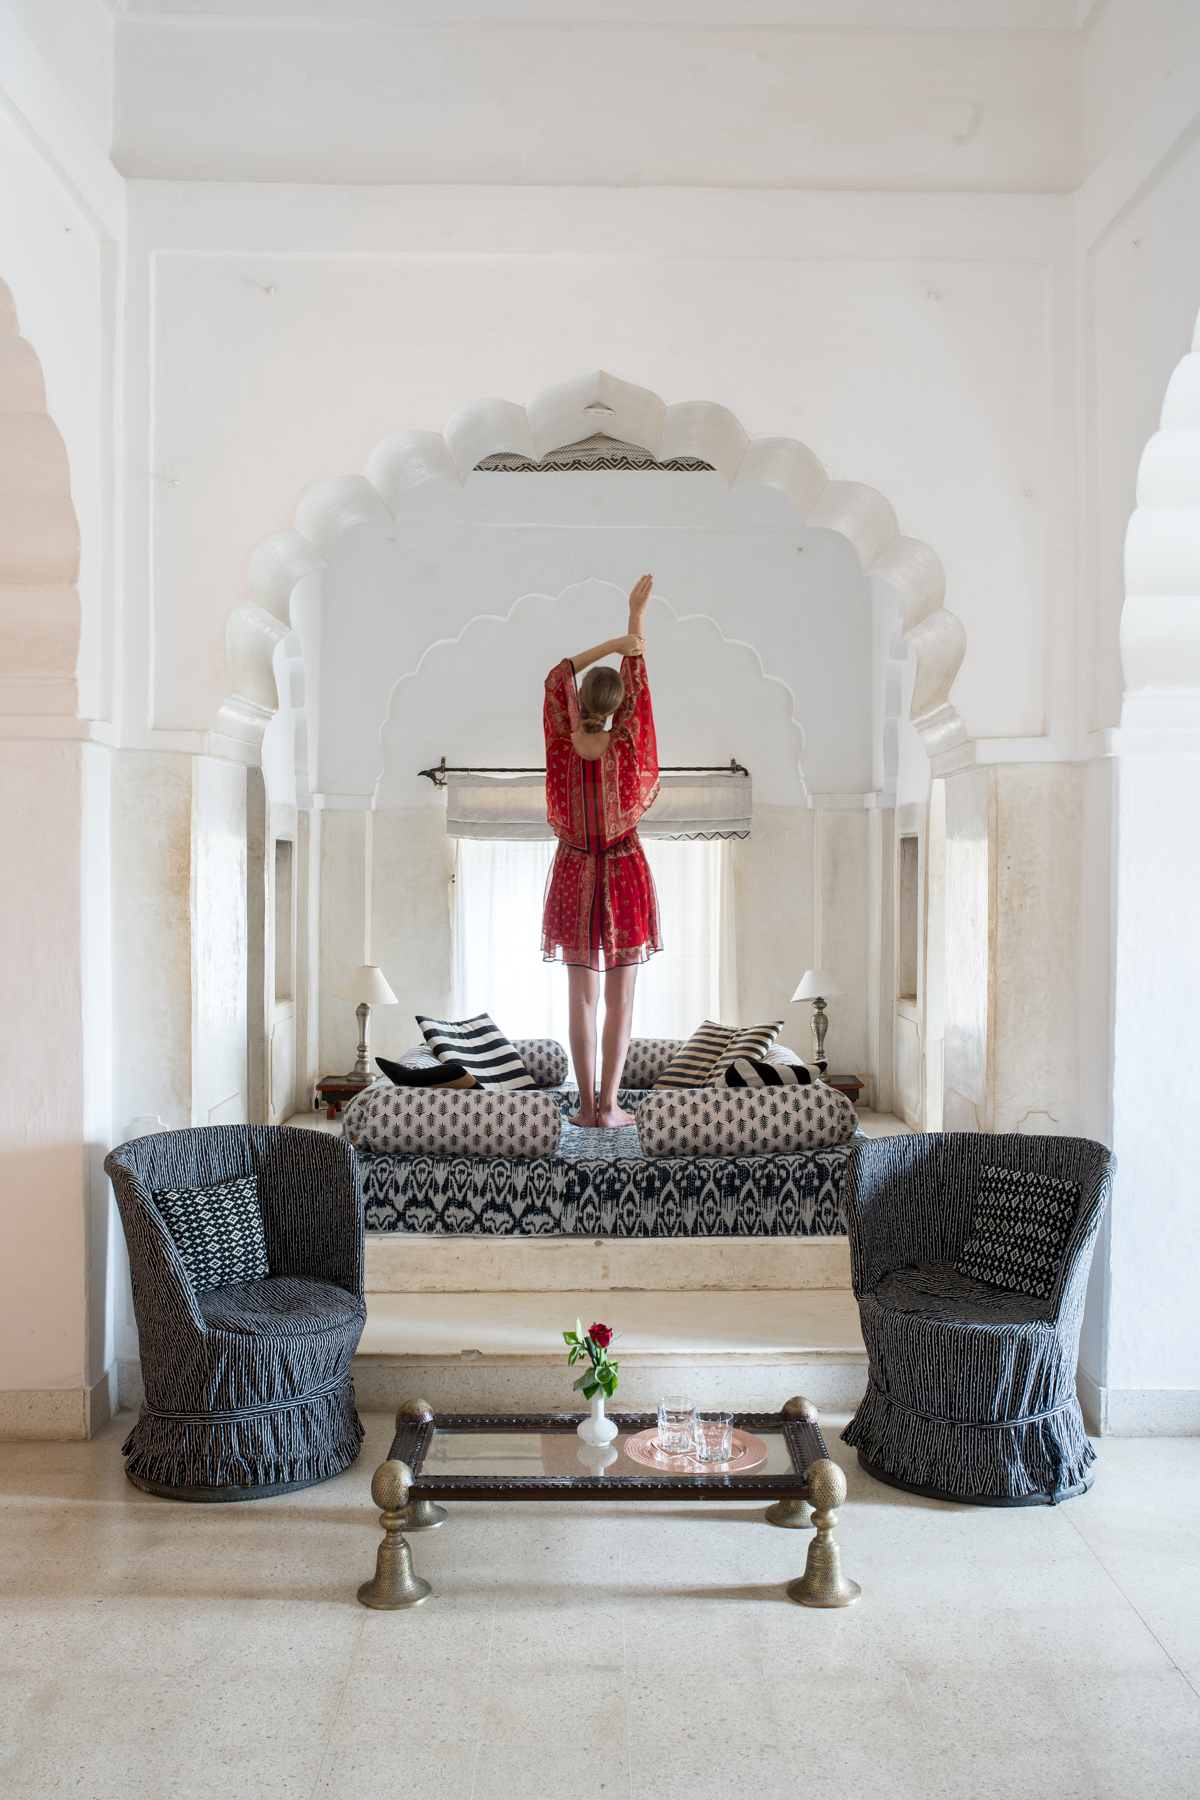 Stacie Flinner Neemrana Fort Palace India -11.jpg